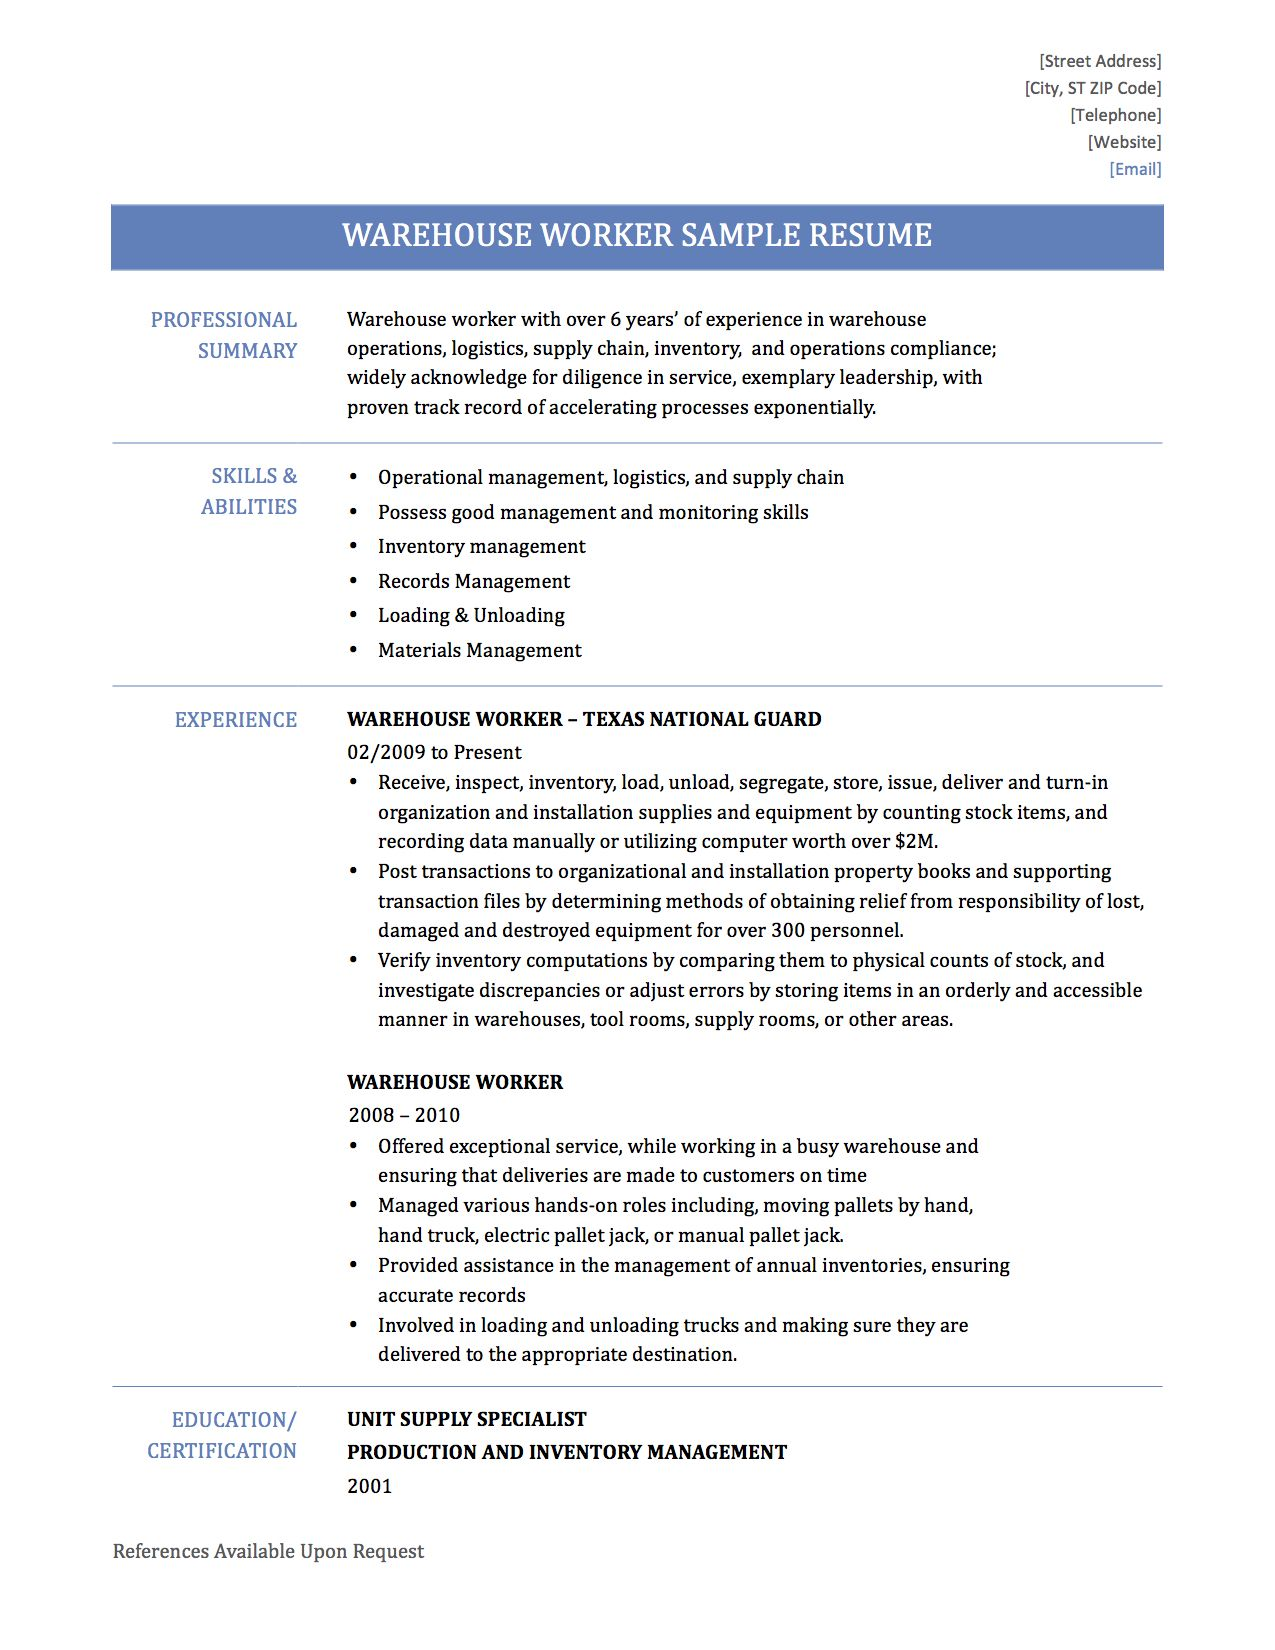 warehouse duties resume cover letter sample retail customer ...